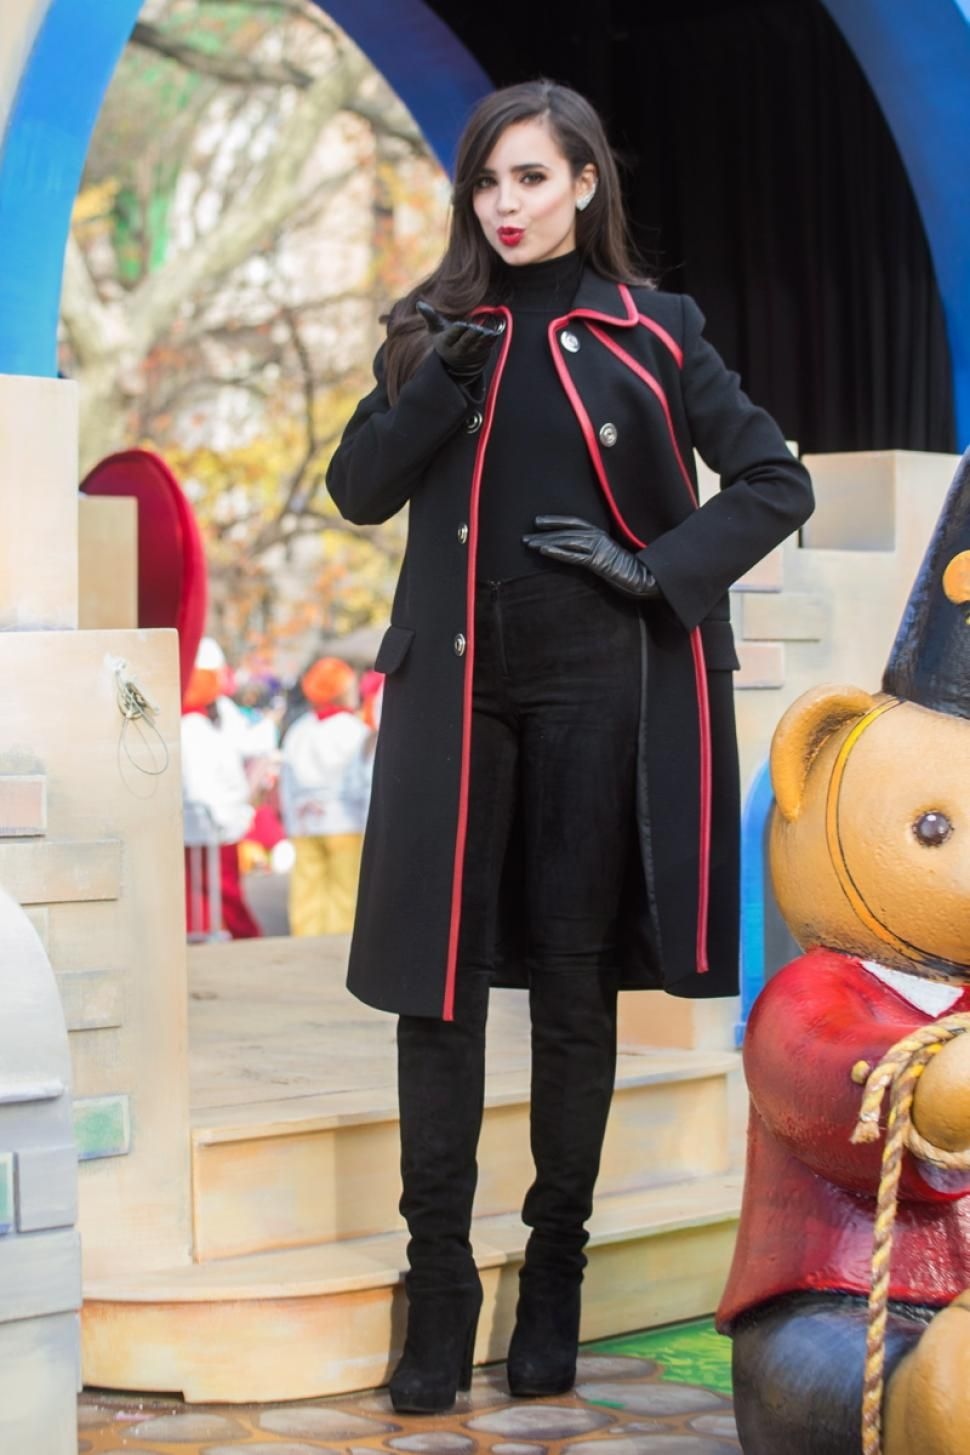 Millions Attend Macy S Thanksgiving Day Parade 2015 Sofia Carson Macy S Thanksgiving Day Parade Sofia